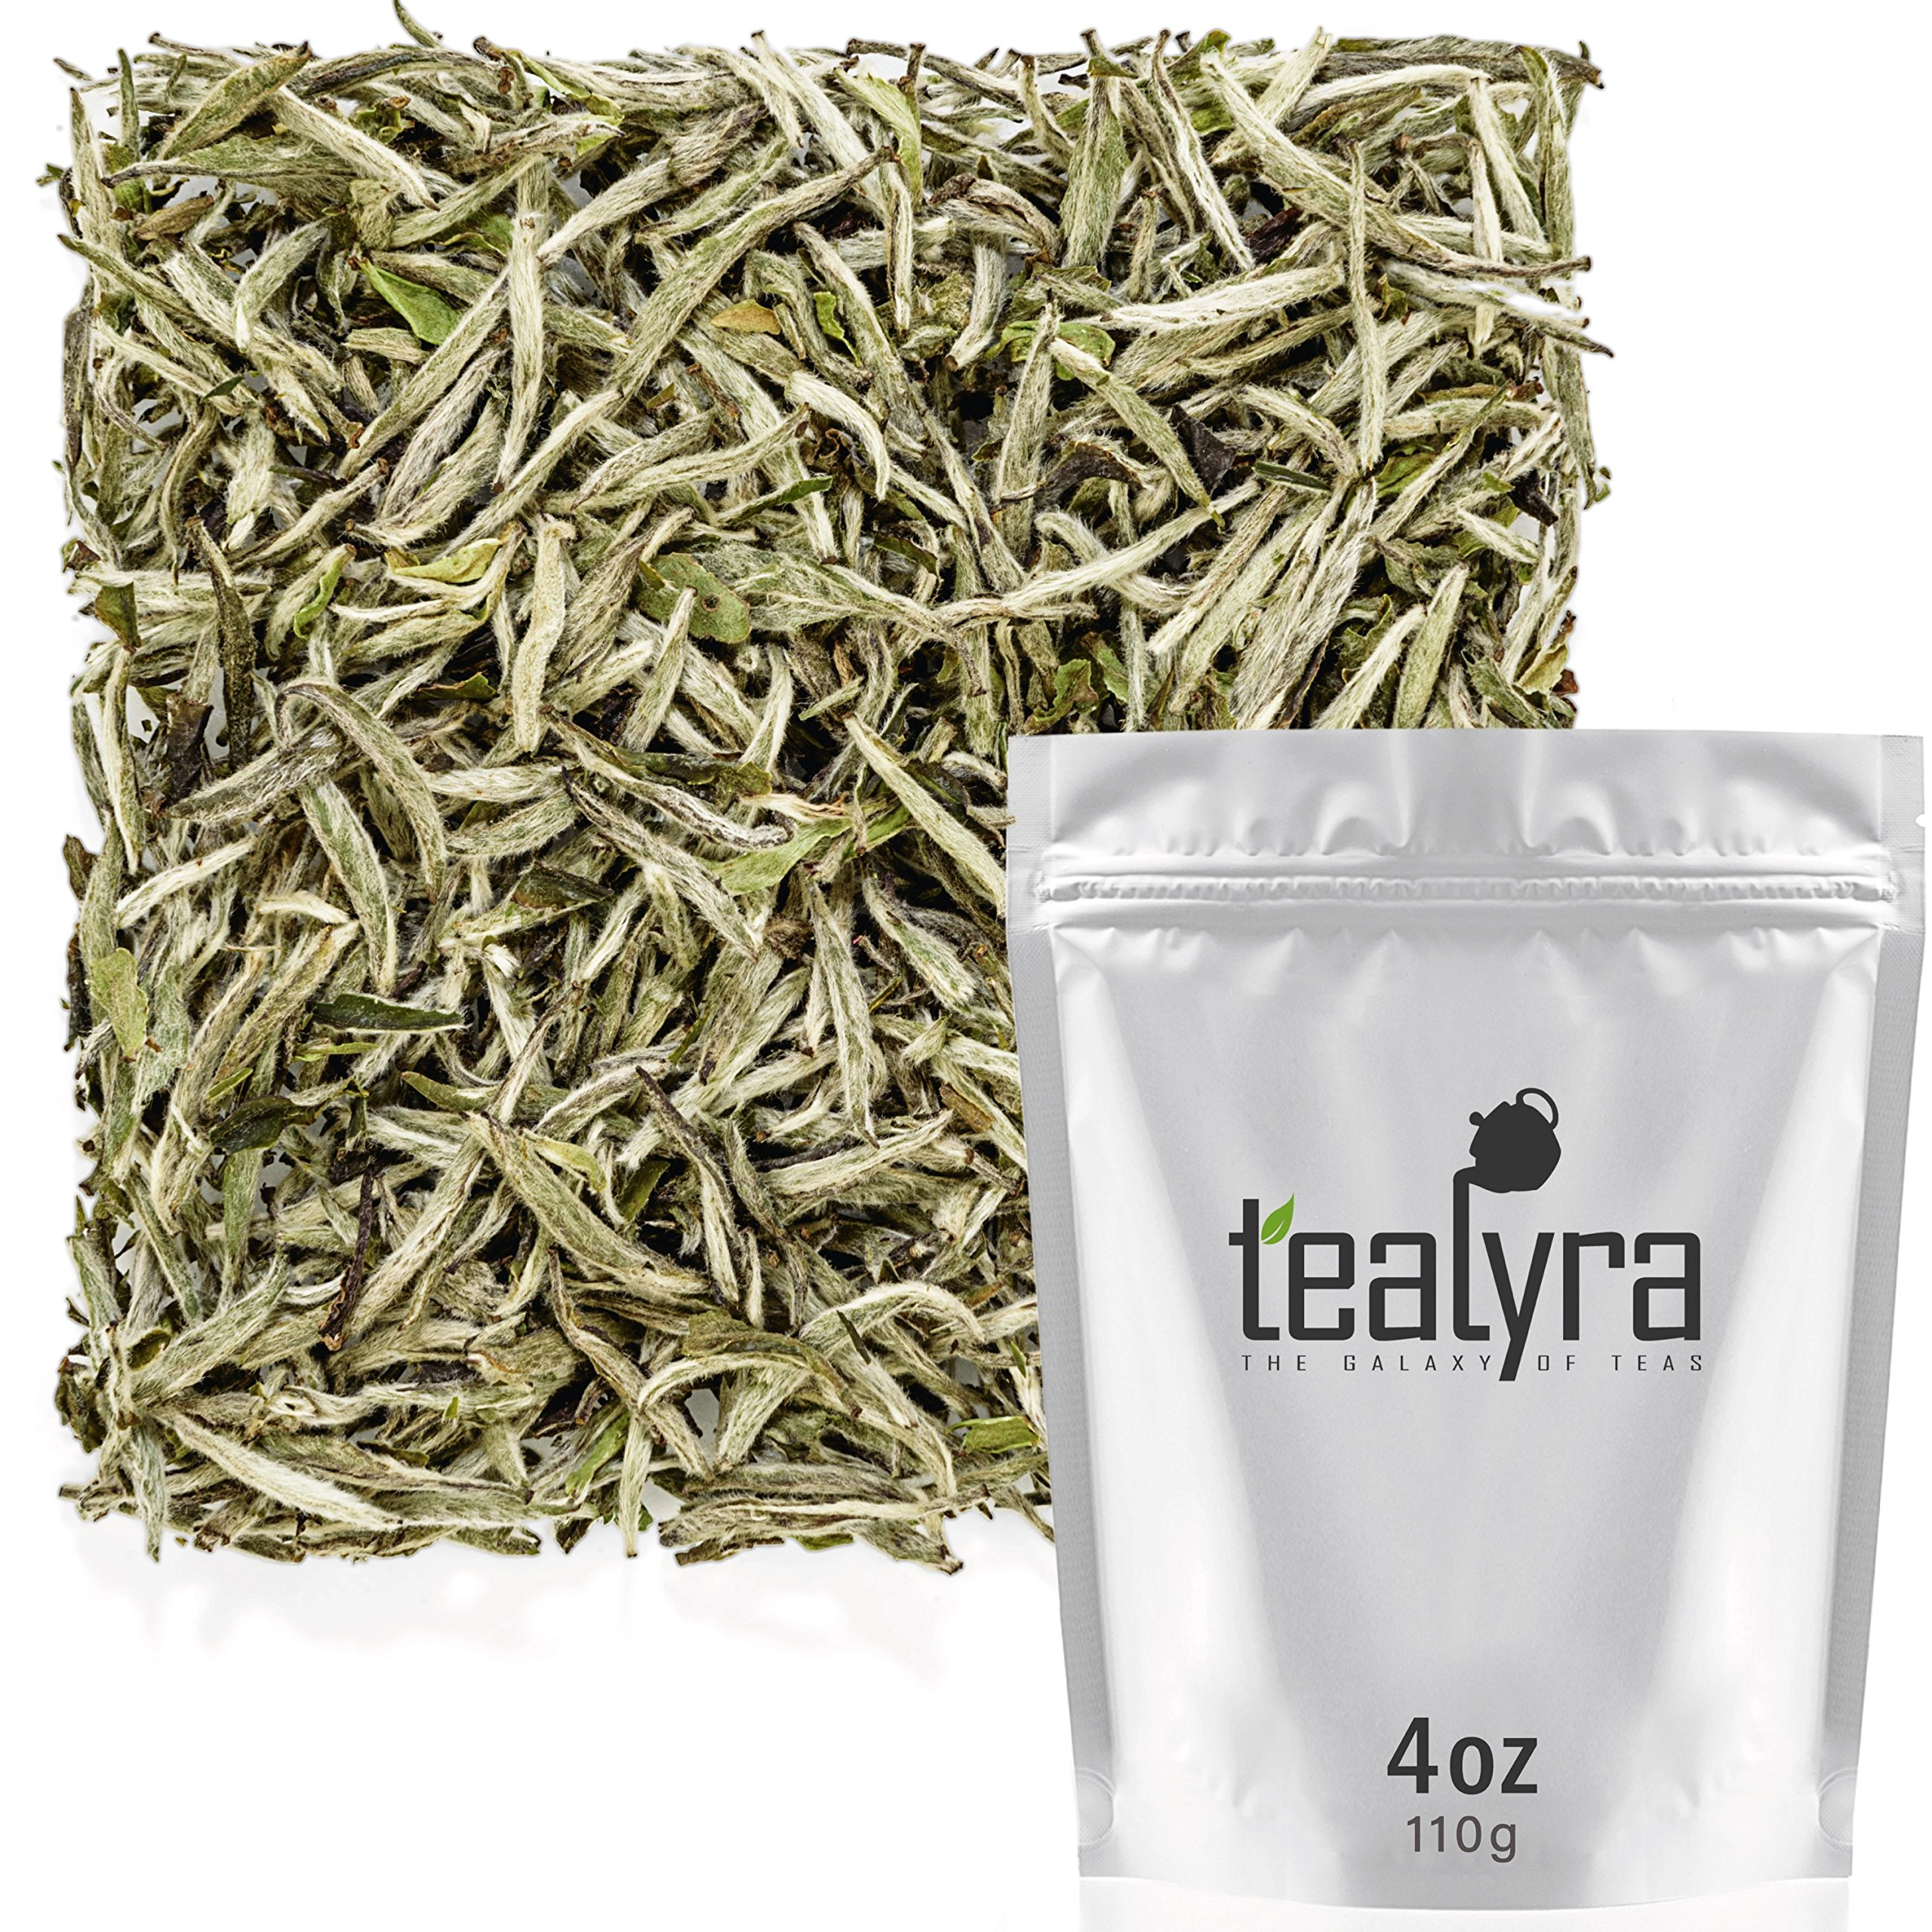 Tealyra - Premium White Silver Needle Tea - Bai Hao Yinzhen - Organically Grown in Fujian China - Superior Chinese Silver Tip White Tea - Loose Leaf Tea - Caffeine Level Low - 110g (4-ounce) by Tealyra